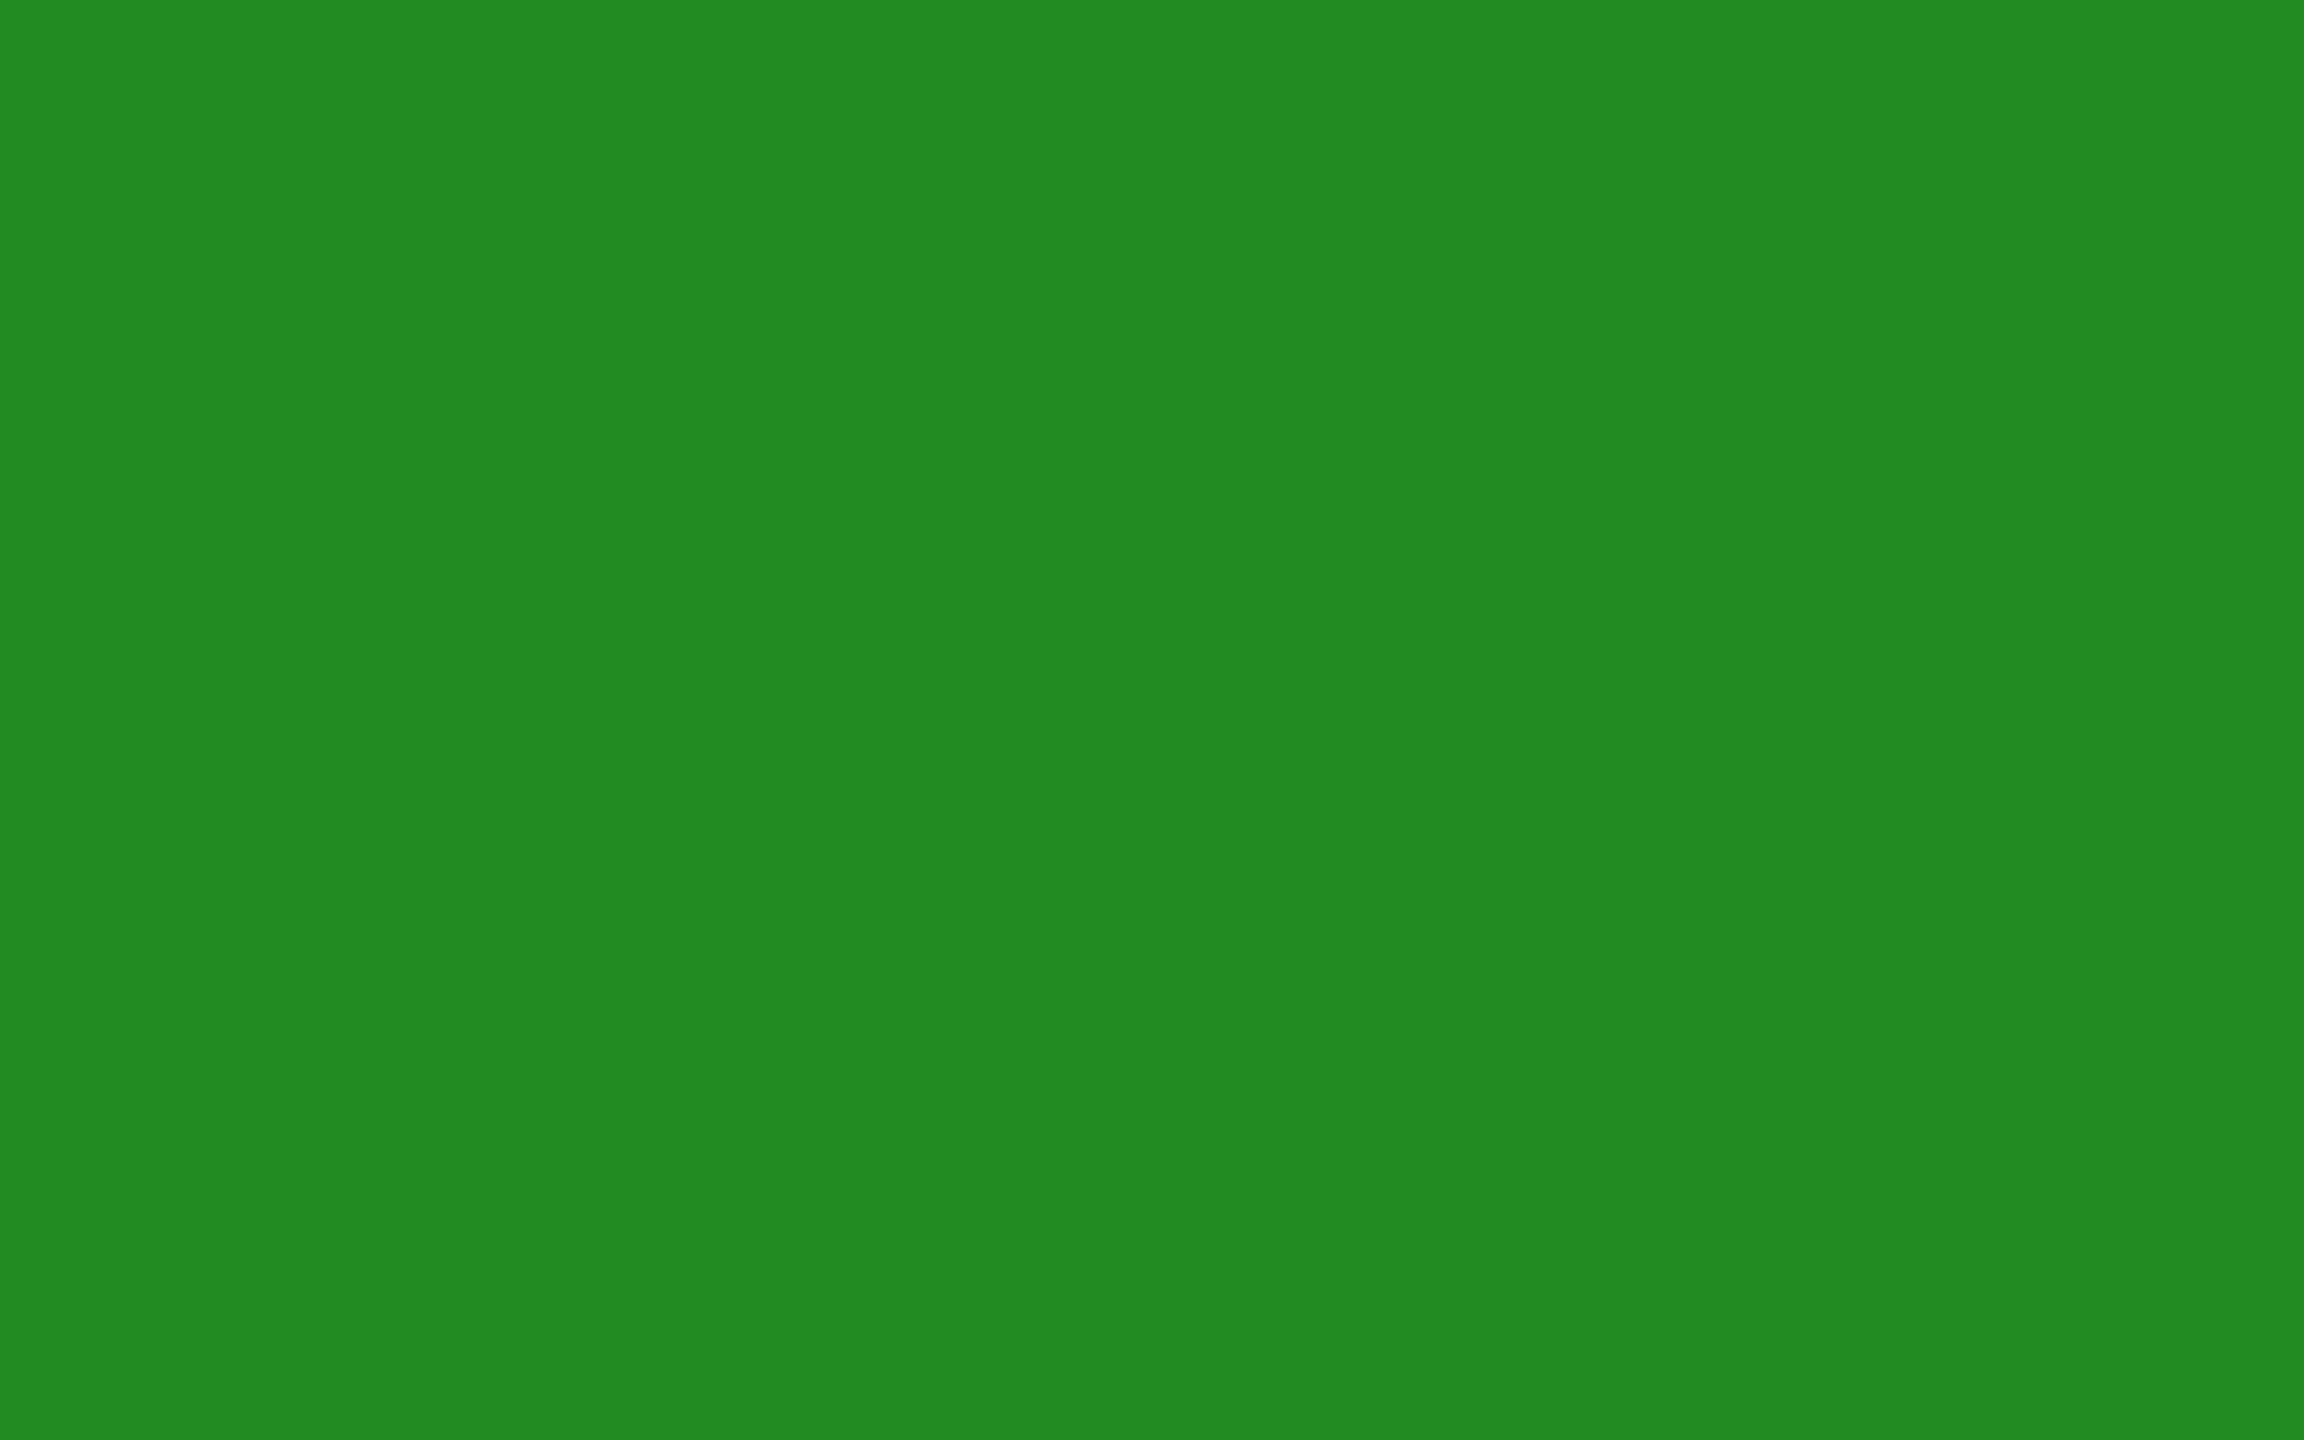 2304x1440 Forest Green For Web Solid Color Background